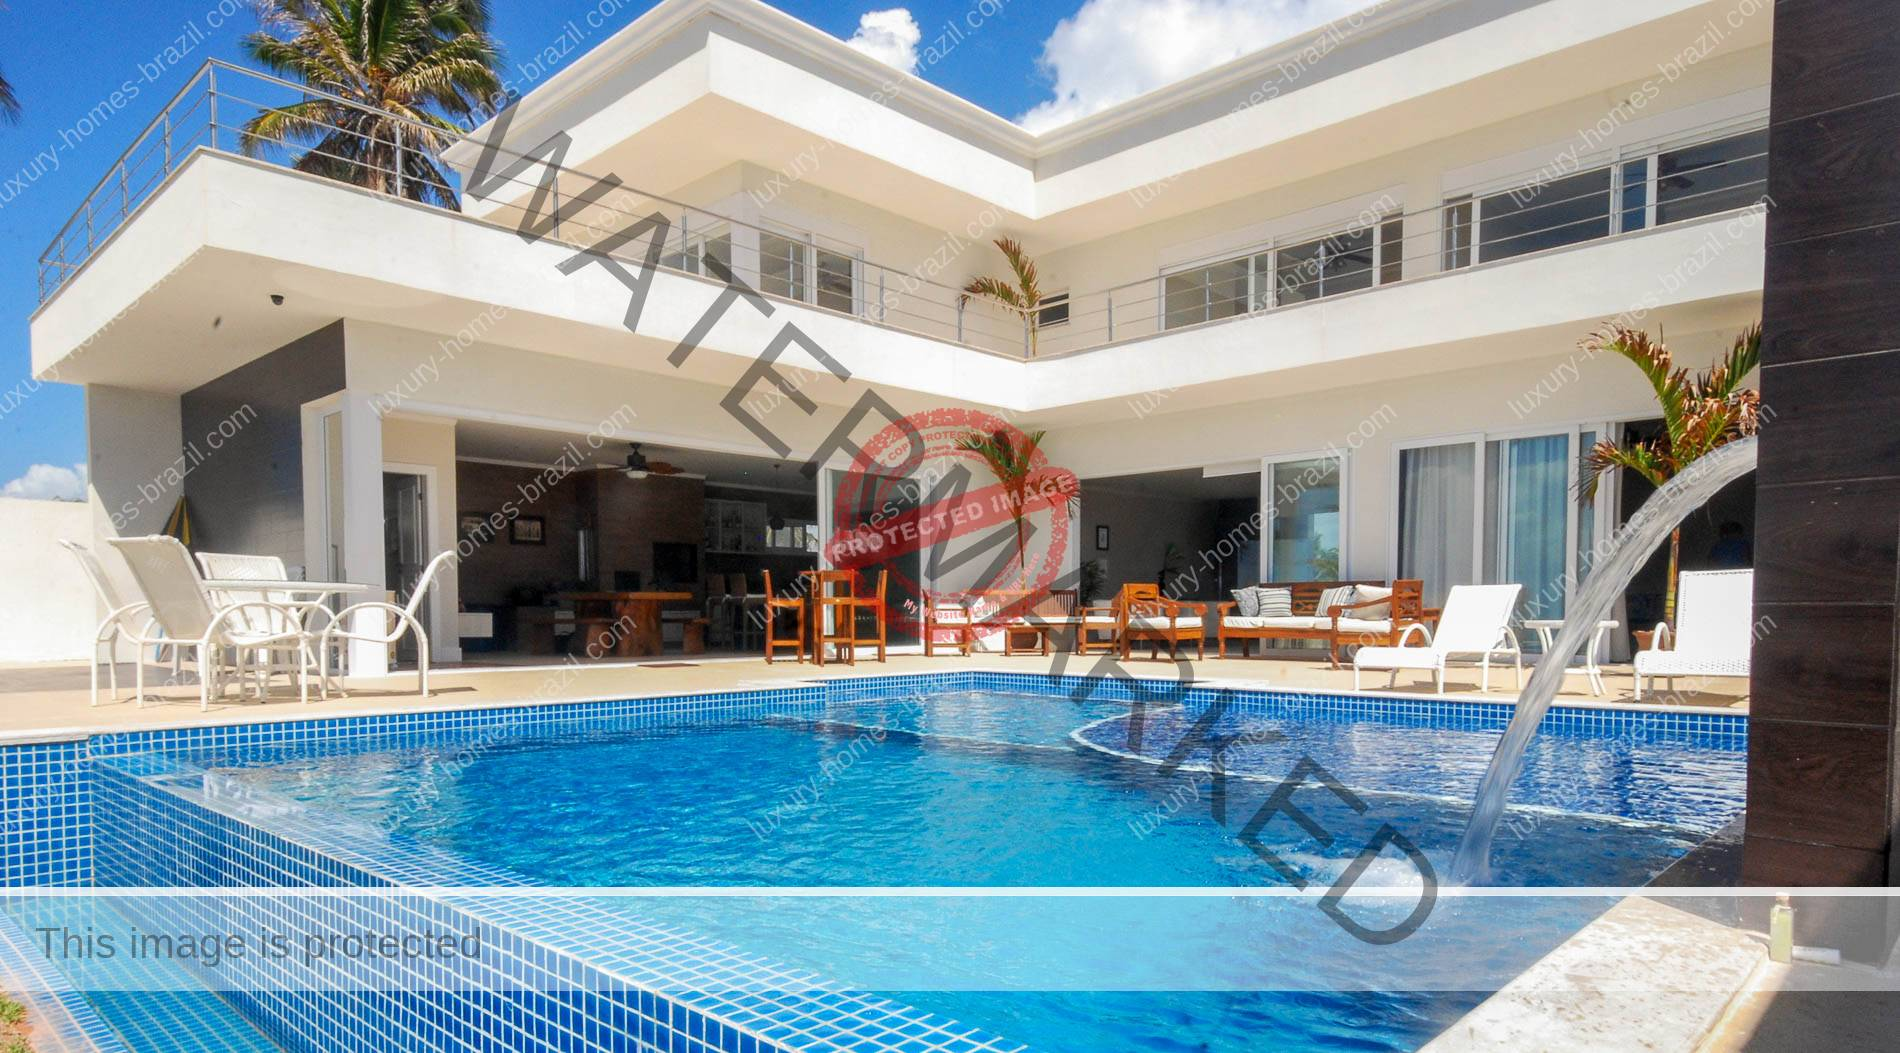 Home · Condos; Luxury Beachfront Home For Sale Barra De Jacuípe